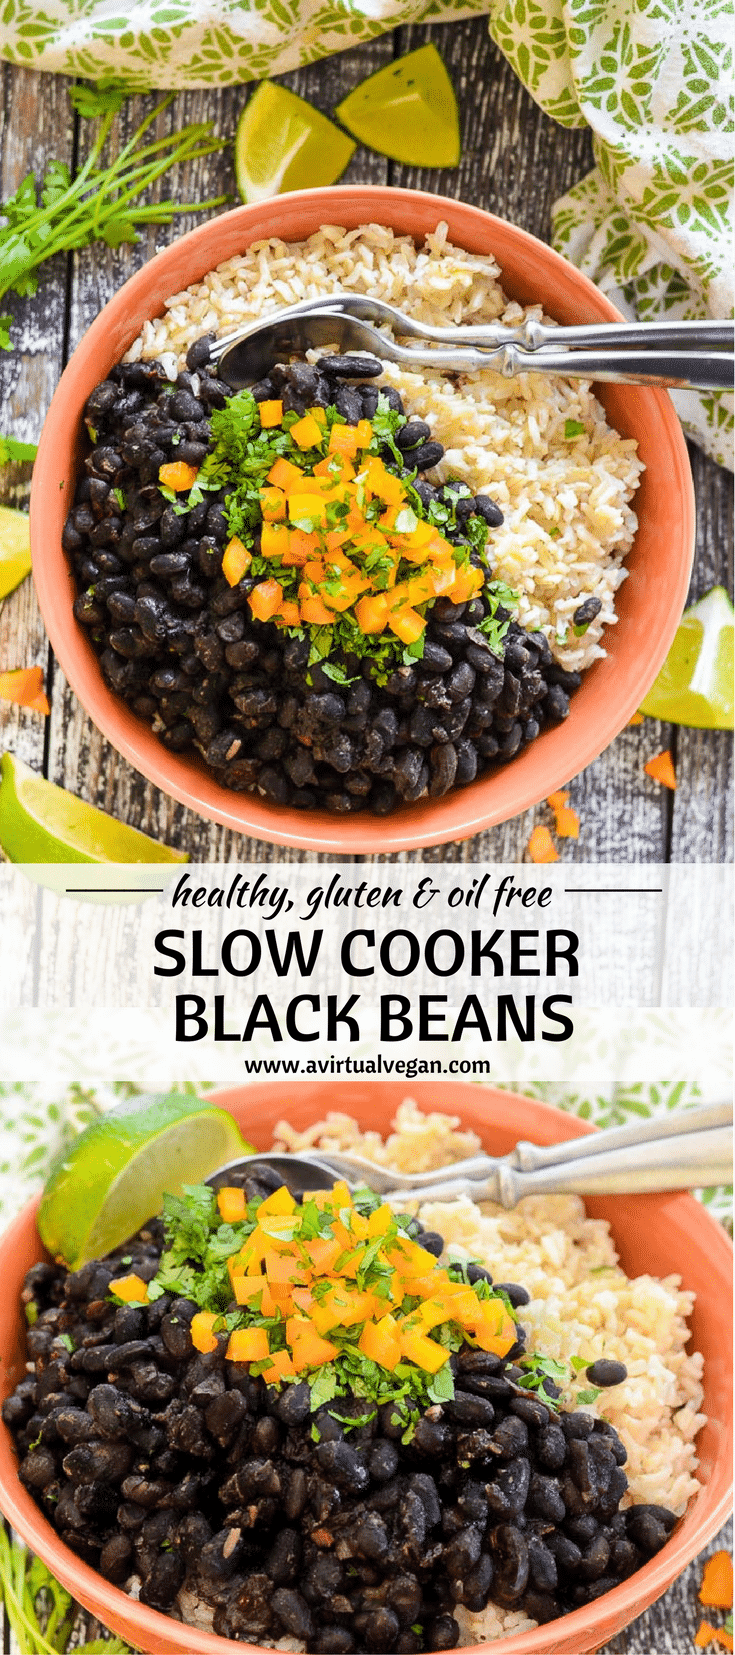 Slow Cooker Black Beans. Hearty, budget friendly, comfort food at it's best! Cook on the stove top or in a slow cooker for a really easy & tasty meal. #blackbeans #slowcooker #crockpot #beans